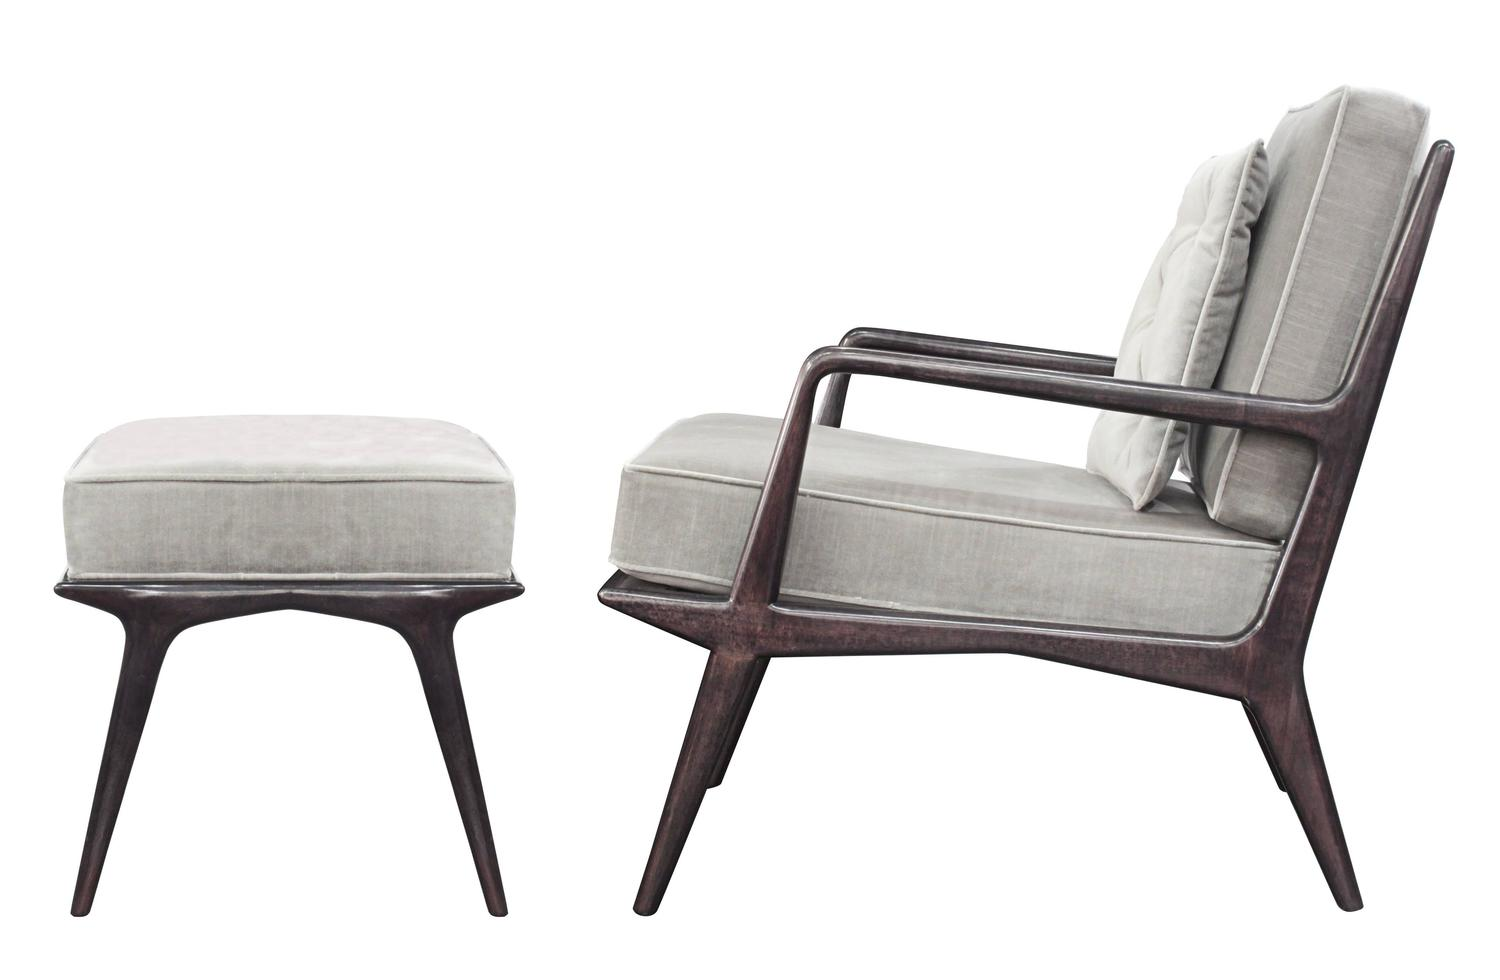 chair and ottoman sets under 200 bamboo repair by carlo de carli for sale at 1stdibs